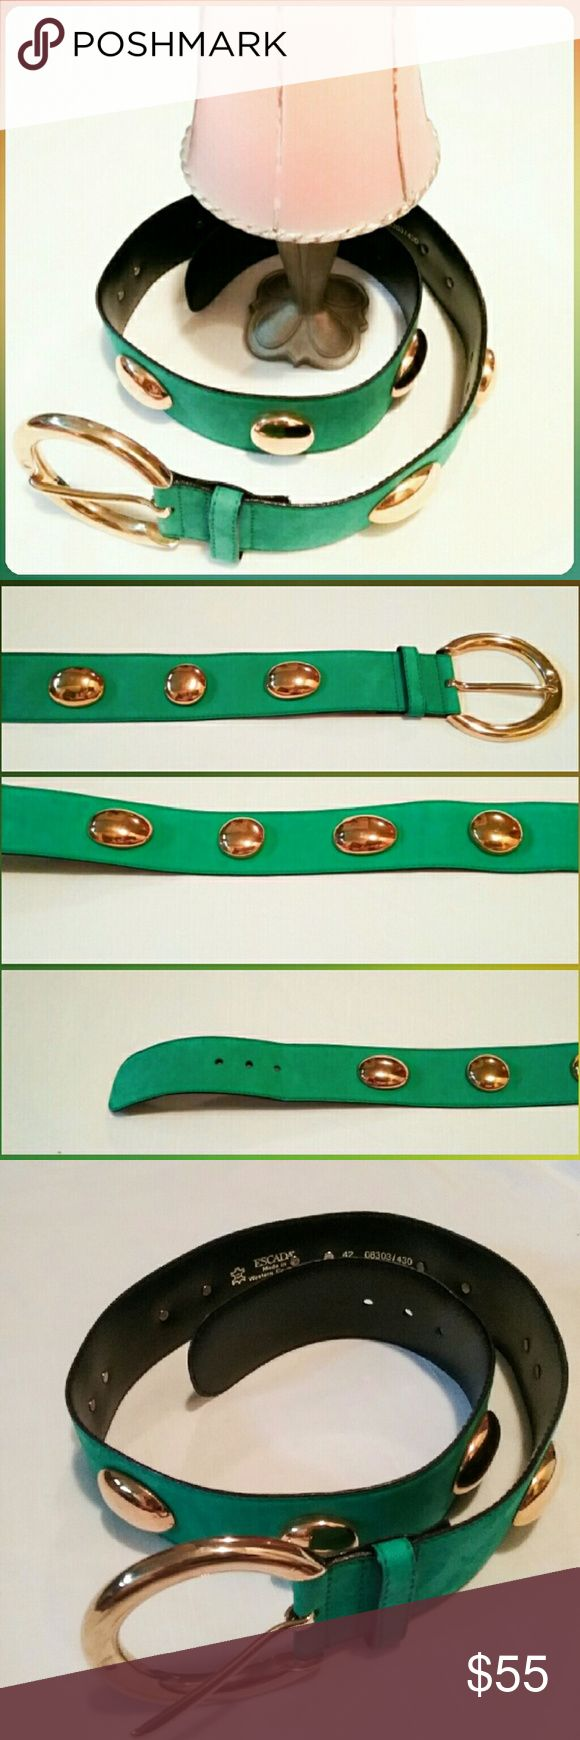 "Vintage Escada Teal Belt with Gold Cabochons EUC This gorgeous vintage Escada belt, circa 1980's, has maintained its glory.  It's in excellent condition.  It measures 36 1/2"" long with the buckle adding another 2 1/2"". The buckle is 3 1/4"" wide, while the belt's with is 2"".  It is 31"" to the first hole & 32 1/2 to the last. The size is 42 (EU) equivalent to US size 10.    Bundle and Save More! Escada Accessories Belts"